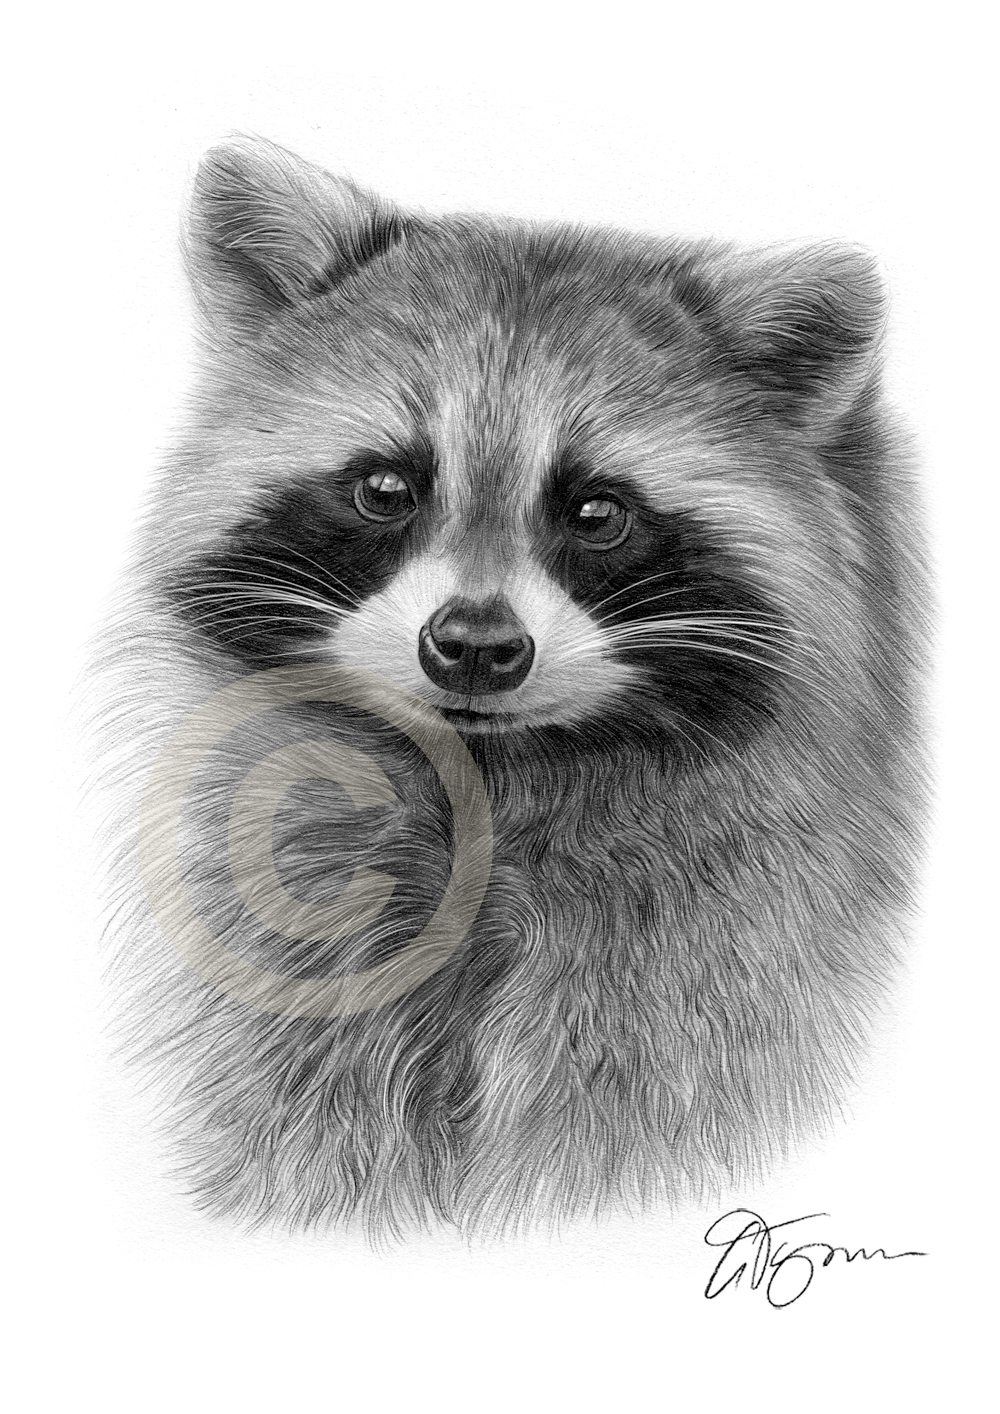 Drawn racoon pencil Artist Tymon pencil young Raccoon